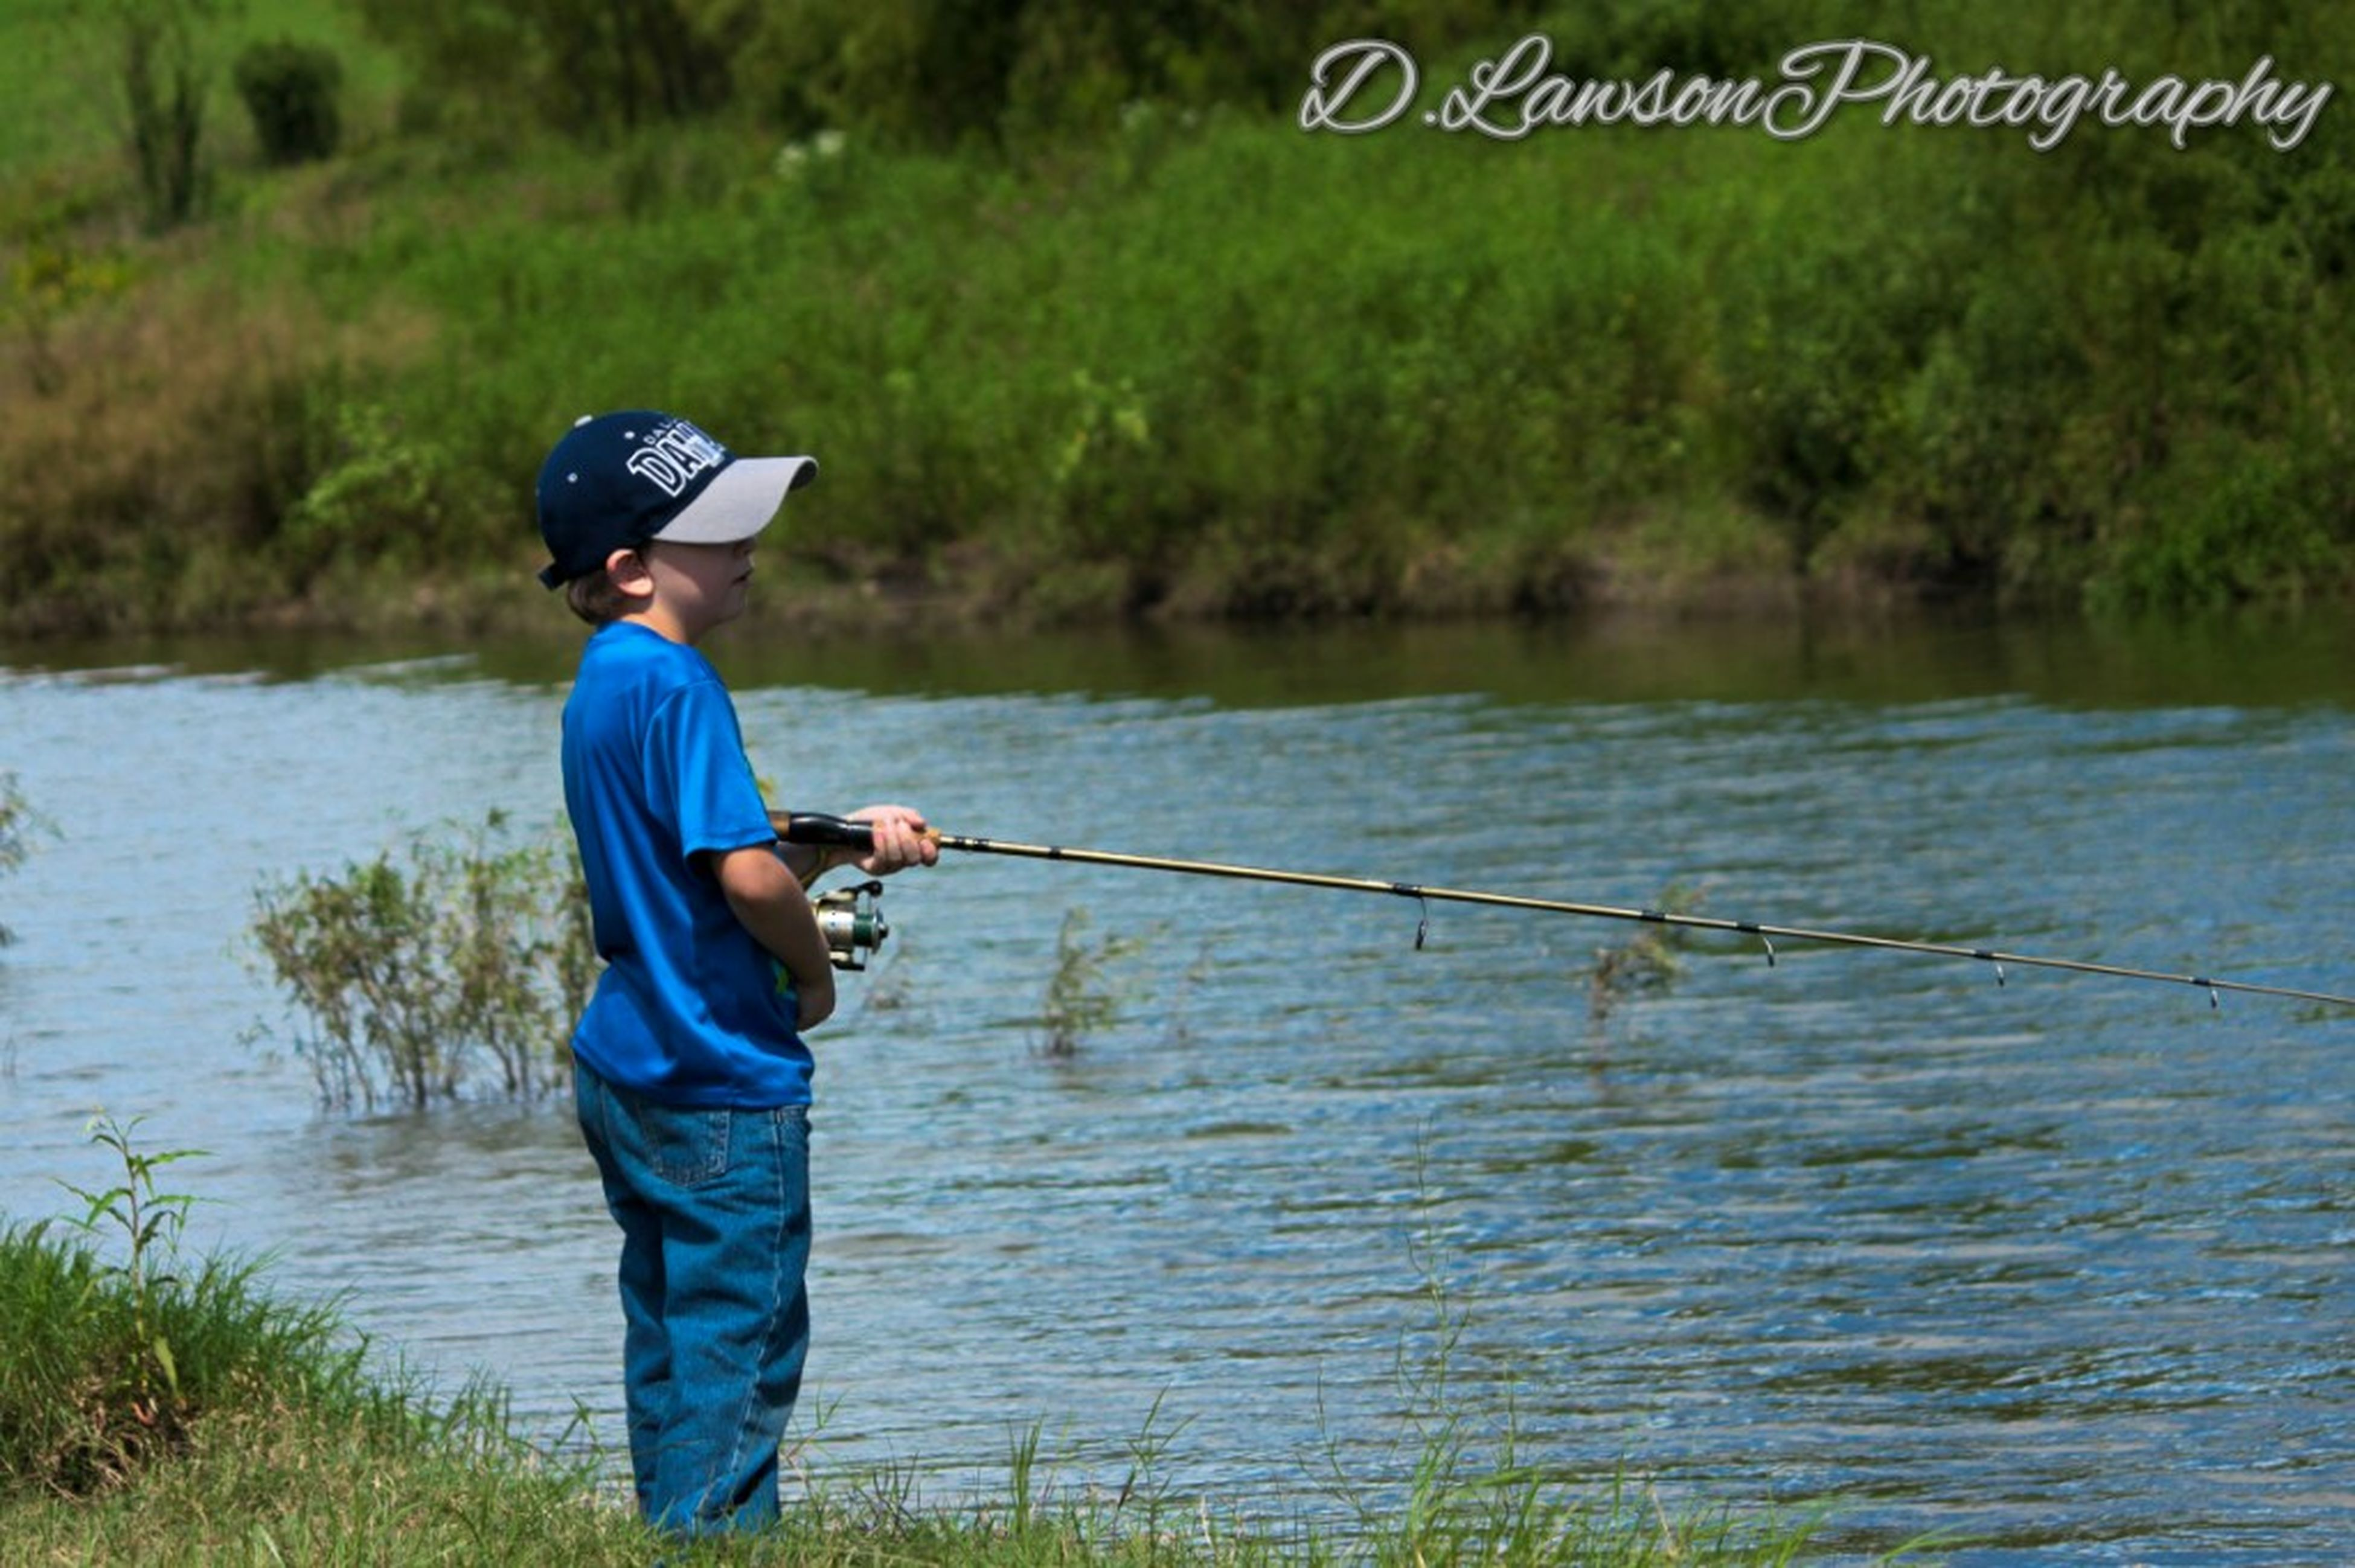 water, casual clothing, full length, grass, leisure activity, lake, boys, lifestyles, side view, childhood, fishing, elementary age, hobbies, holding, standing, plant, person, vacations, nature, day, green color